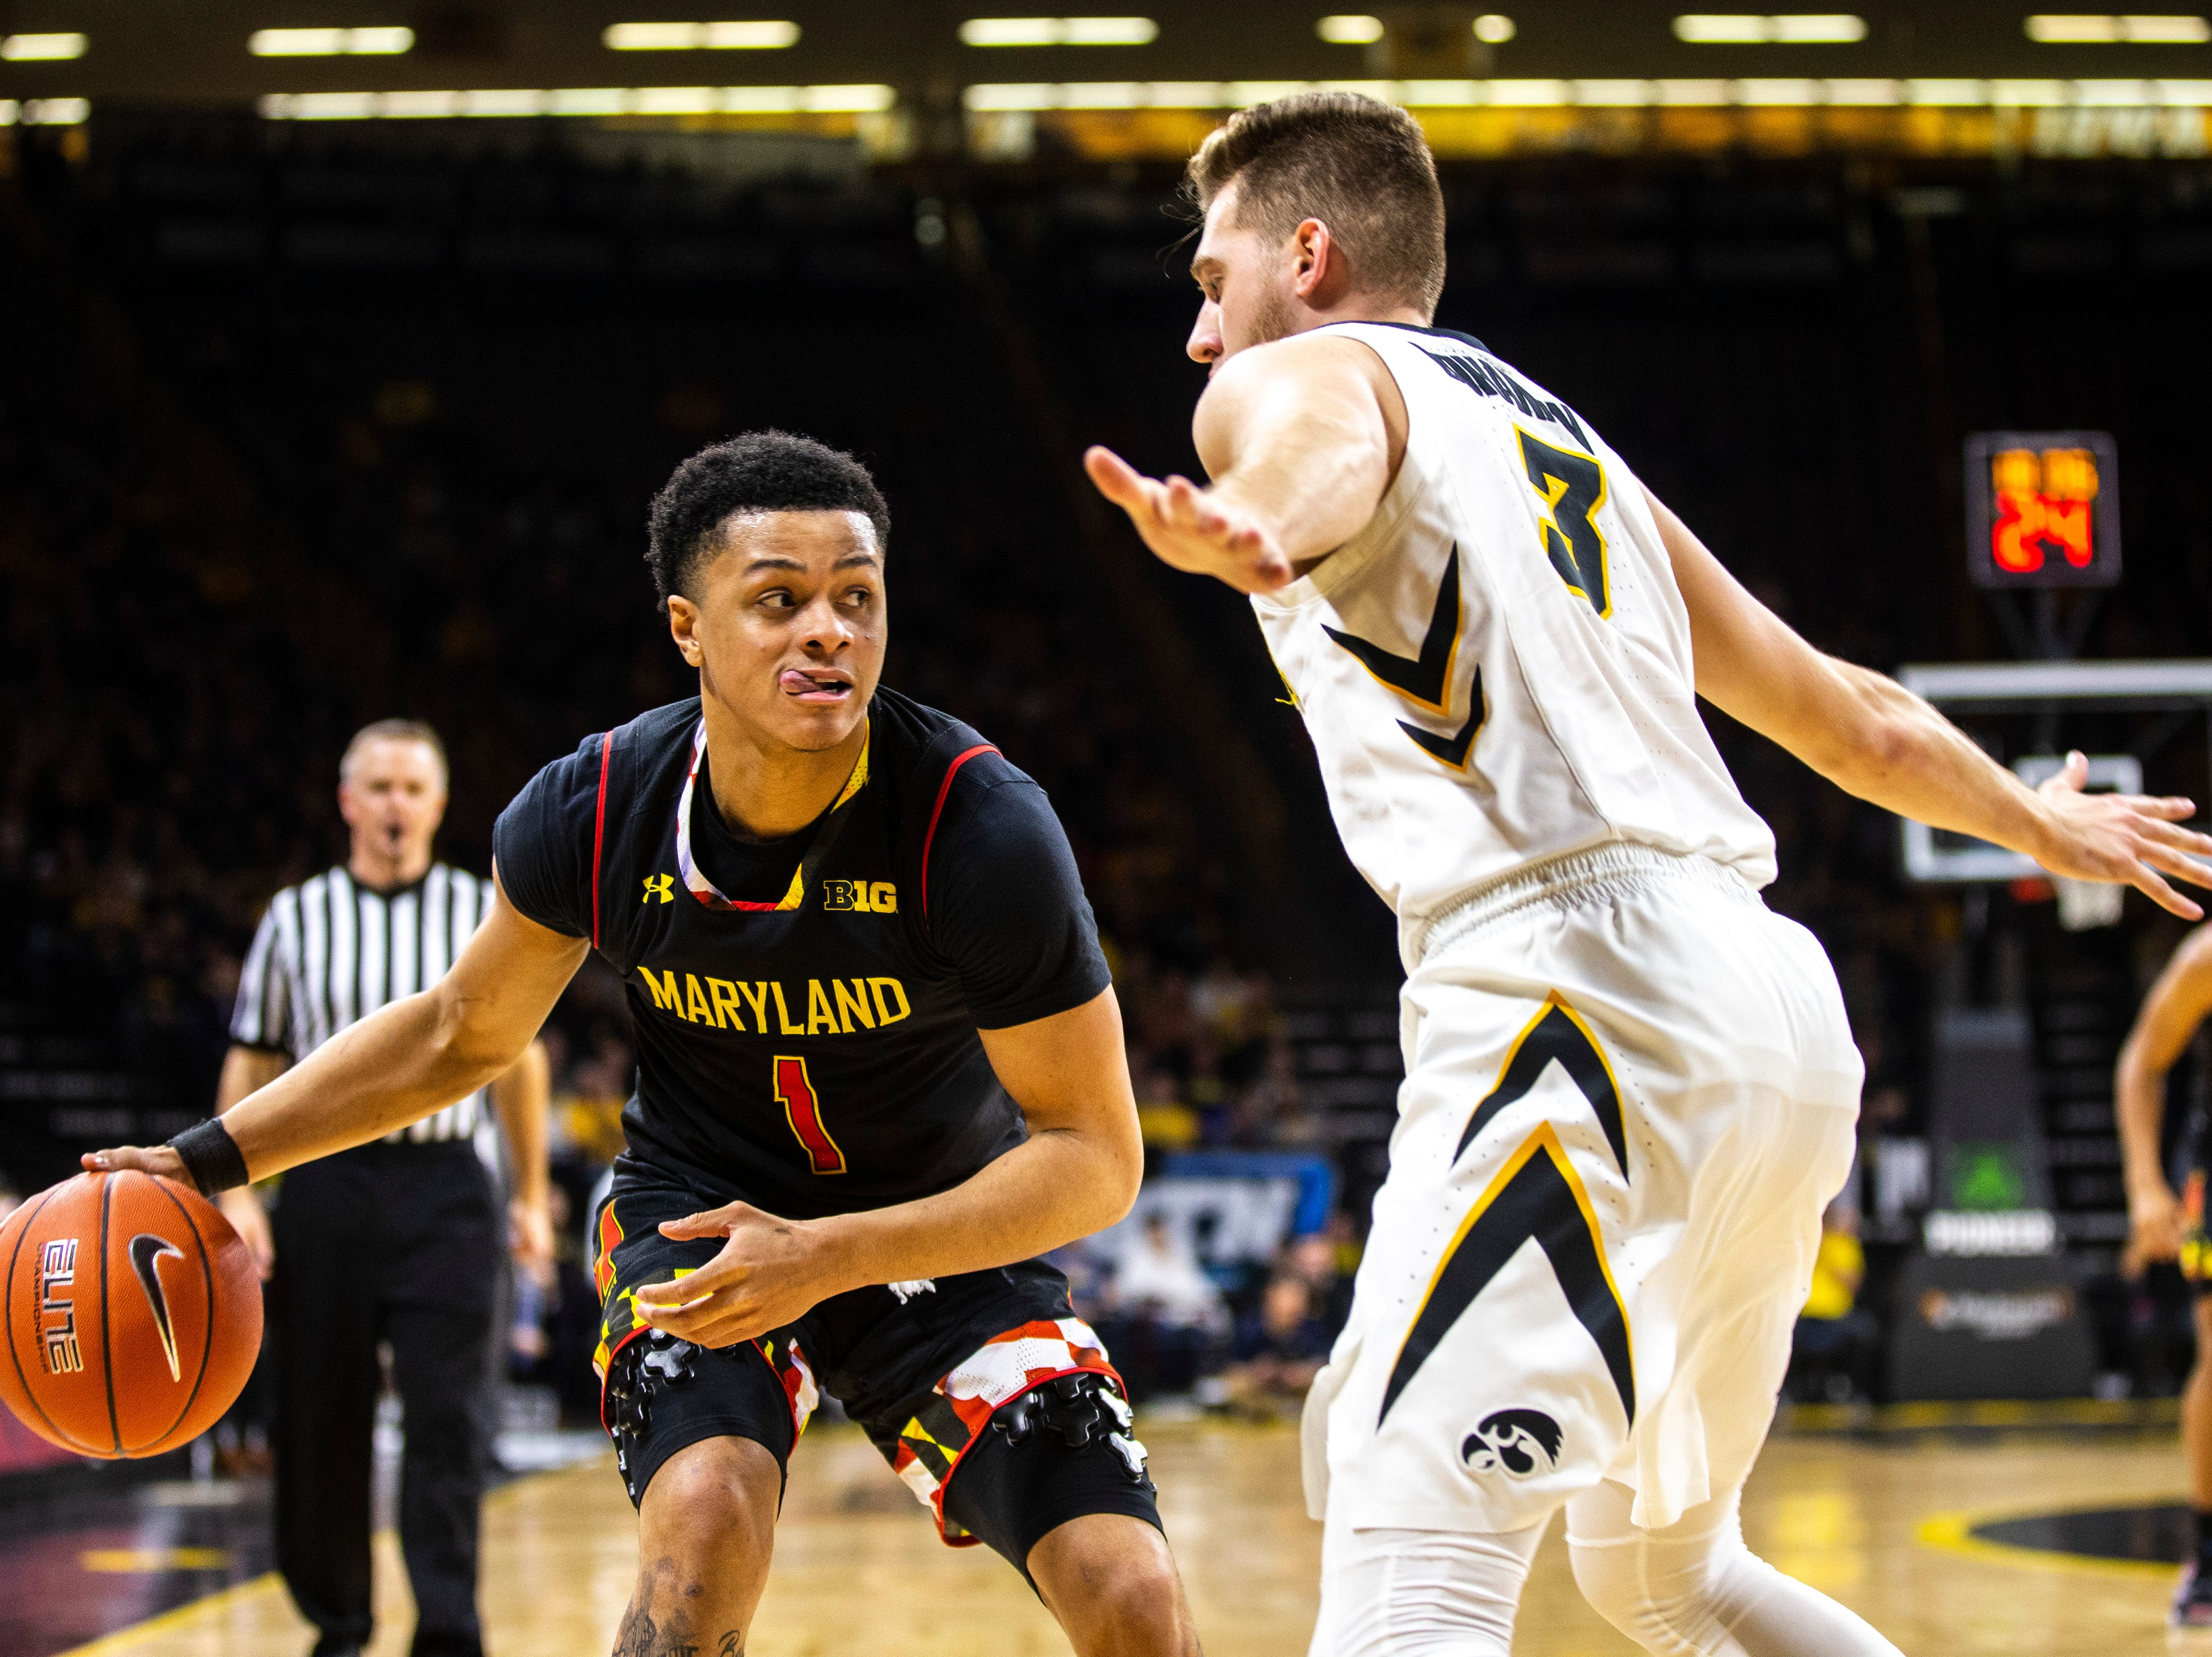 Maryland guard Anthony Cowan Jr. (1) takes the ball up court while Iowa guard Jordan Bohannon (3) defends during a NCAA Big Ten Conference men's basketball game on Tuesday, Feb. 19, 2019 at Carver-Hawkeye Arena in Iowa City, Iowa.